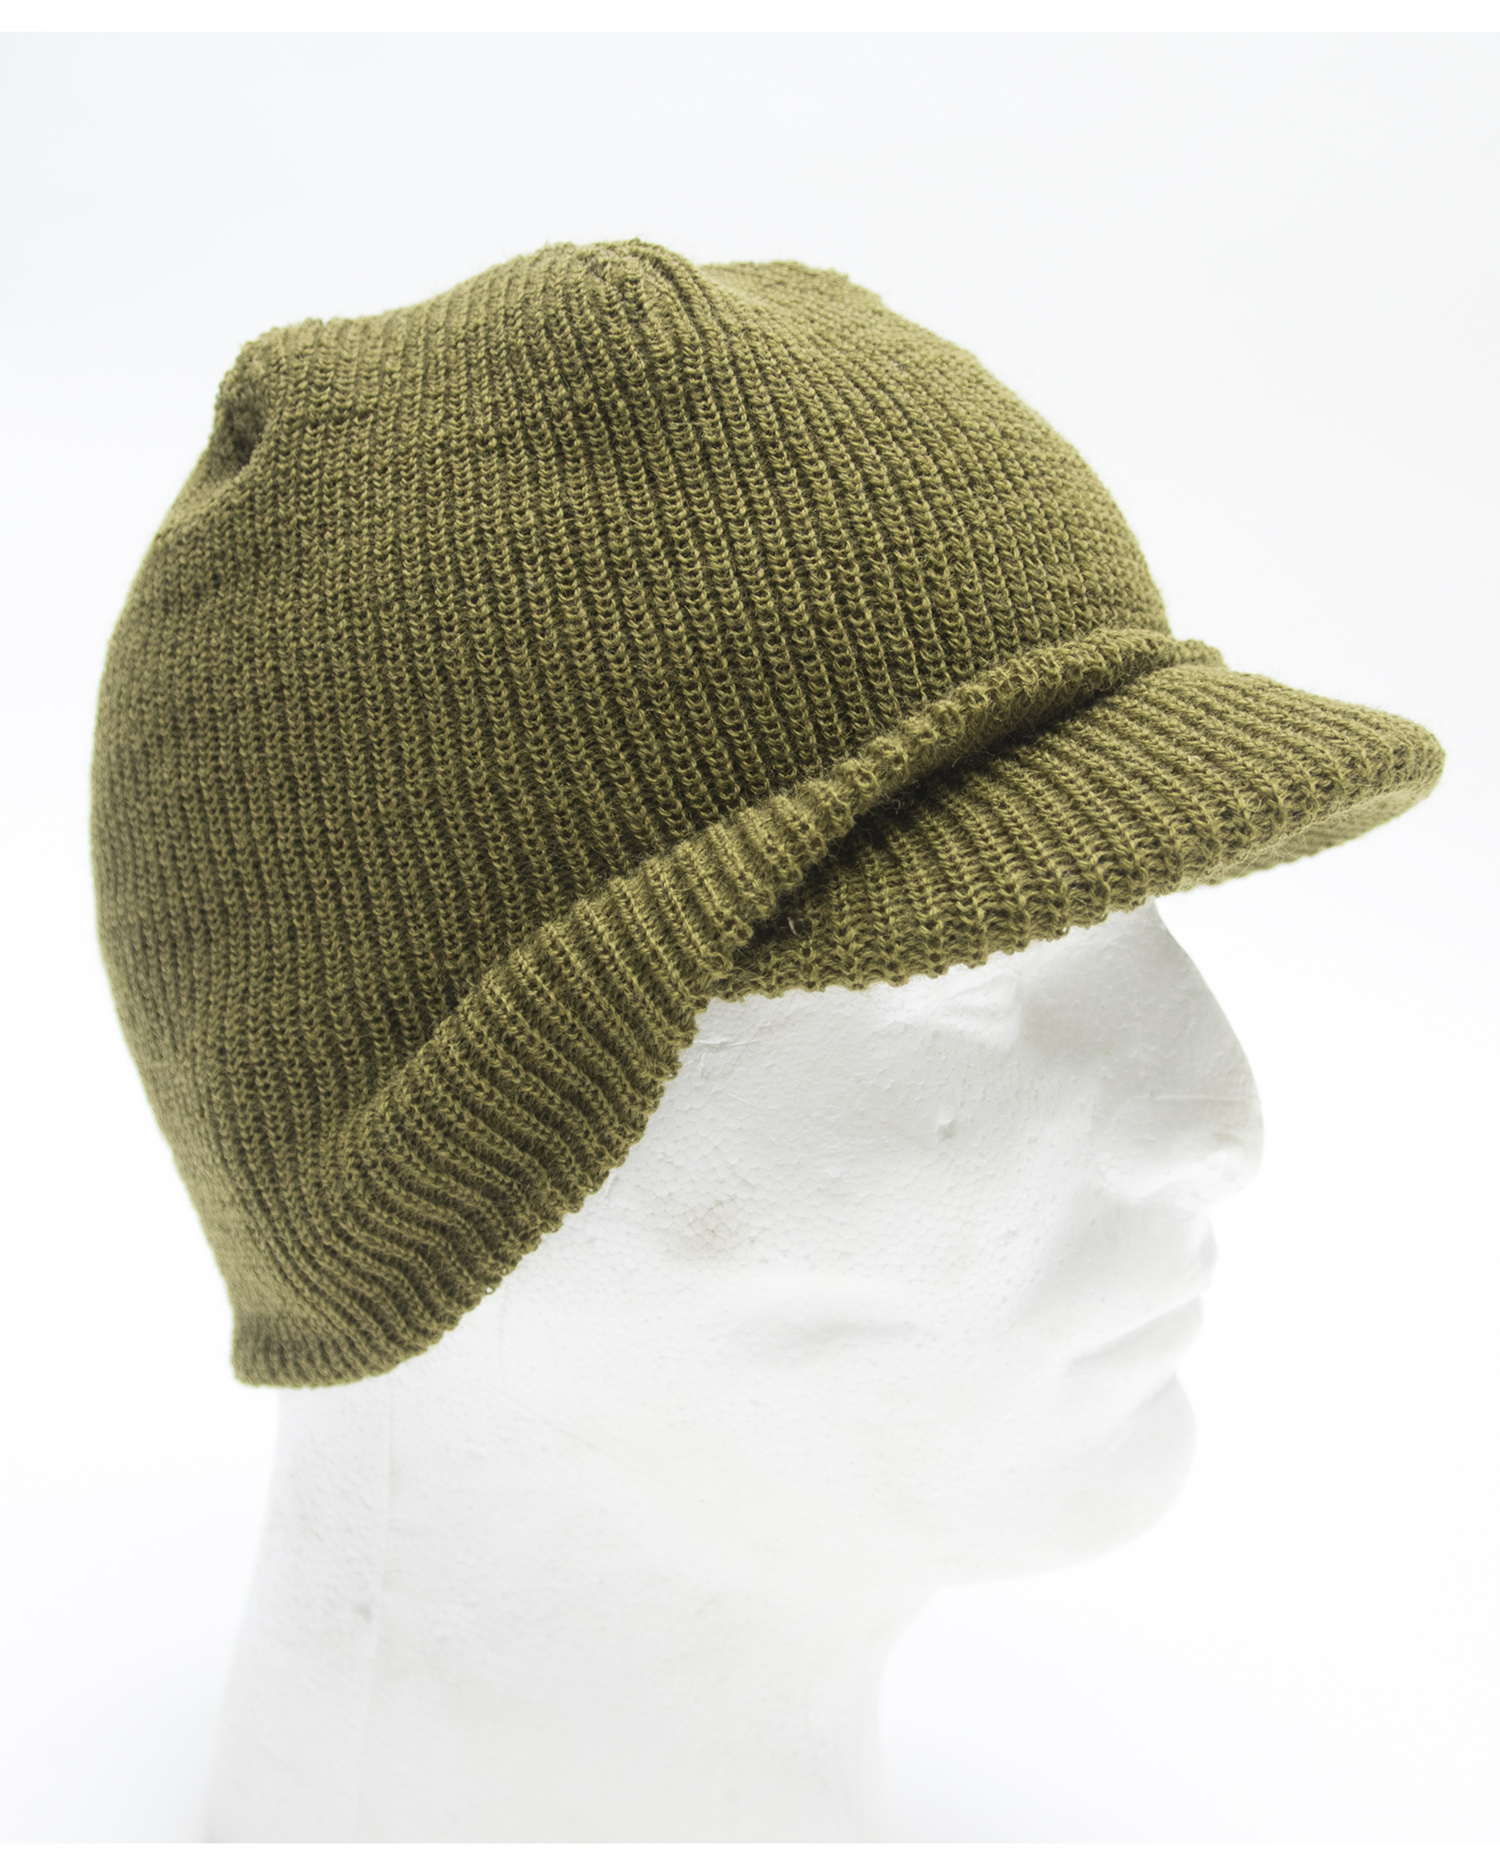 M1941 wool knit cap with short visor designed to be worn under the steel  helmet. Commonly known as the